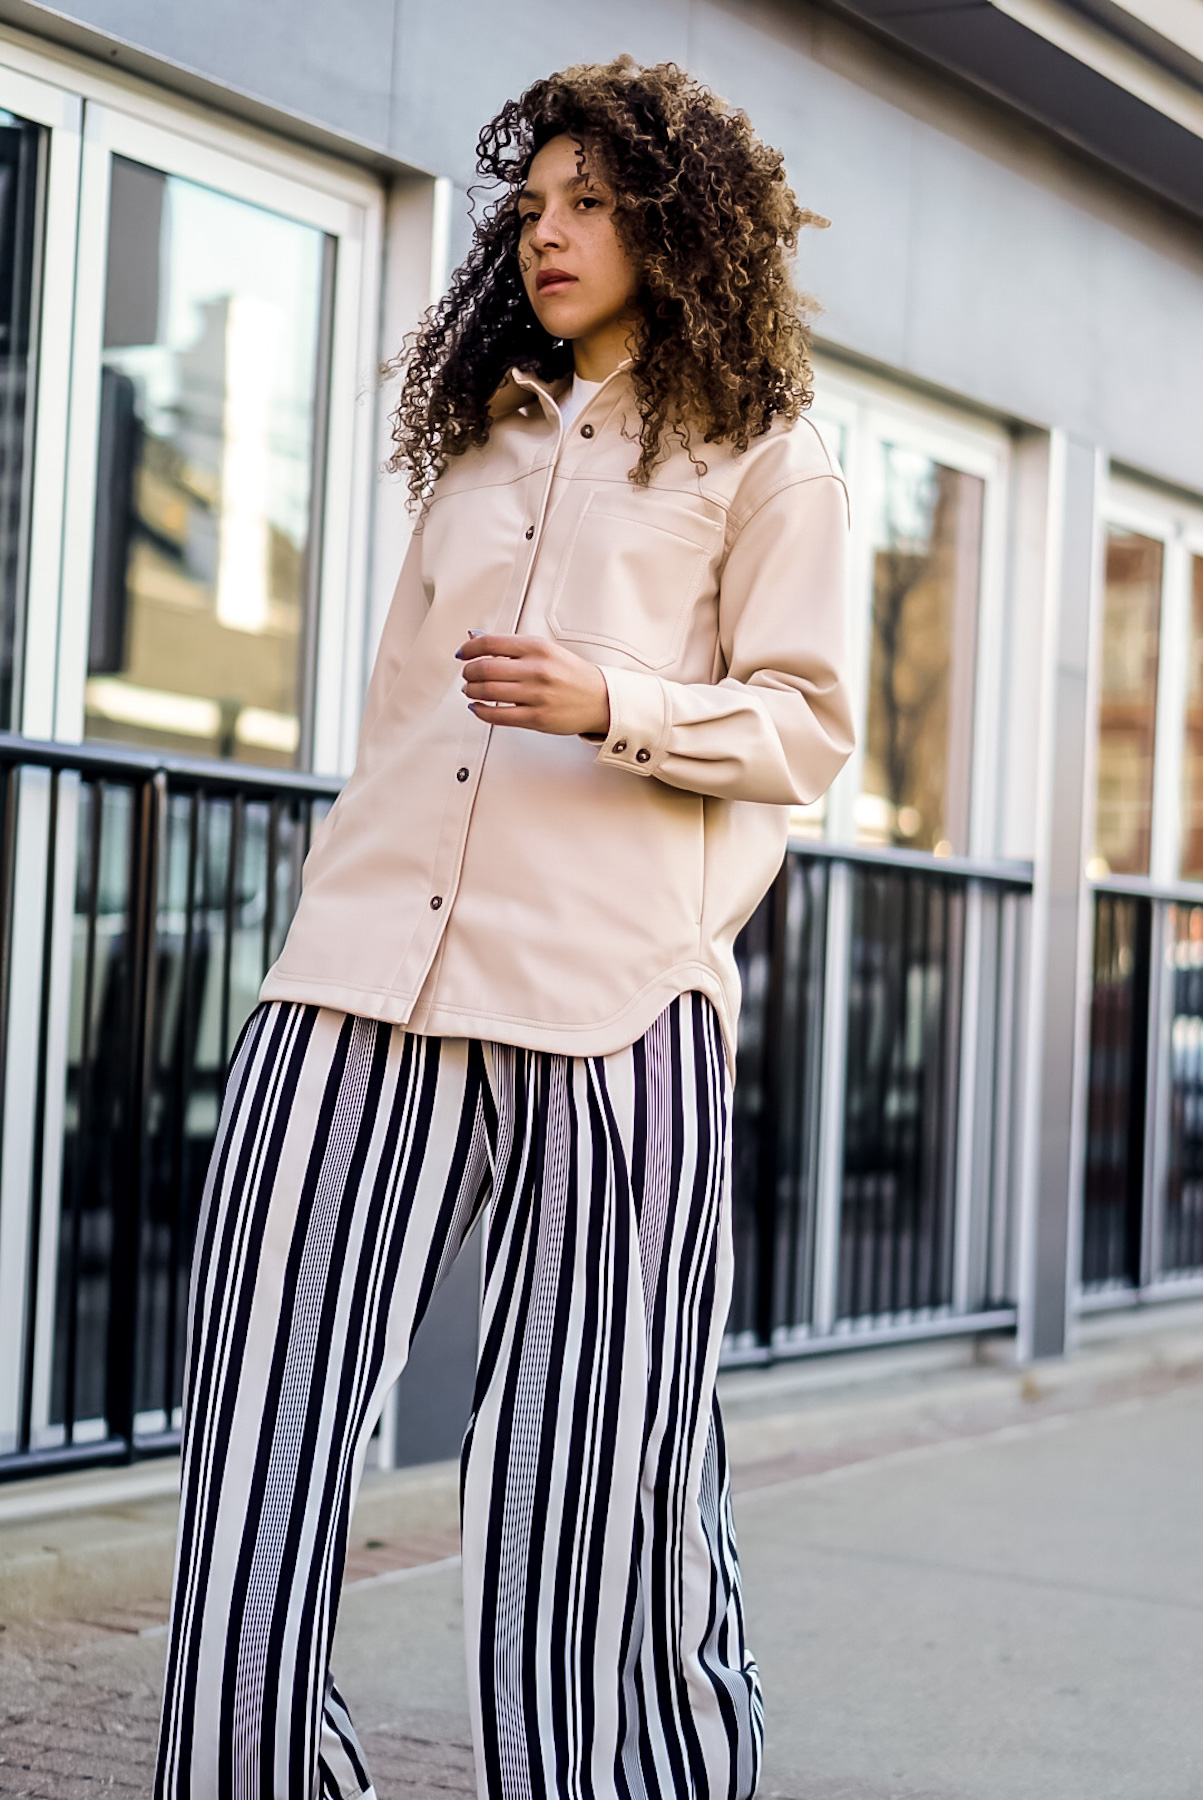 shacket outfit women, chic spring outfit ideas for women, latest fashion trends for women what to wear: shacket, black fashion bloggers inspiration, H&M faux leather shacket